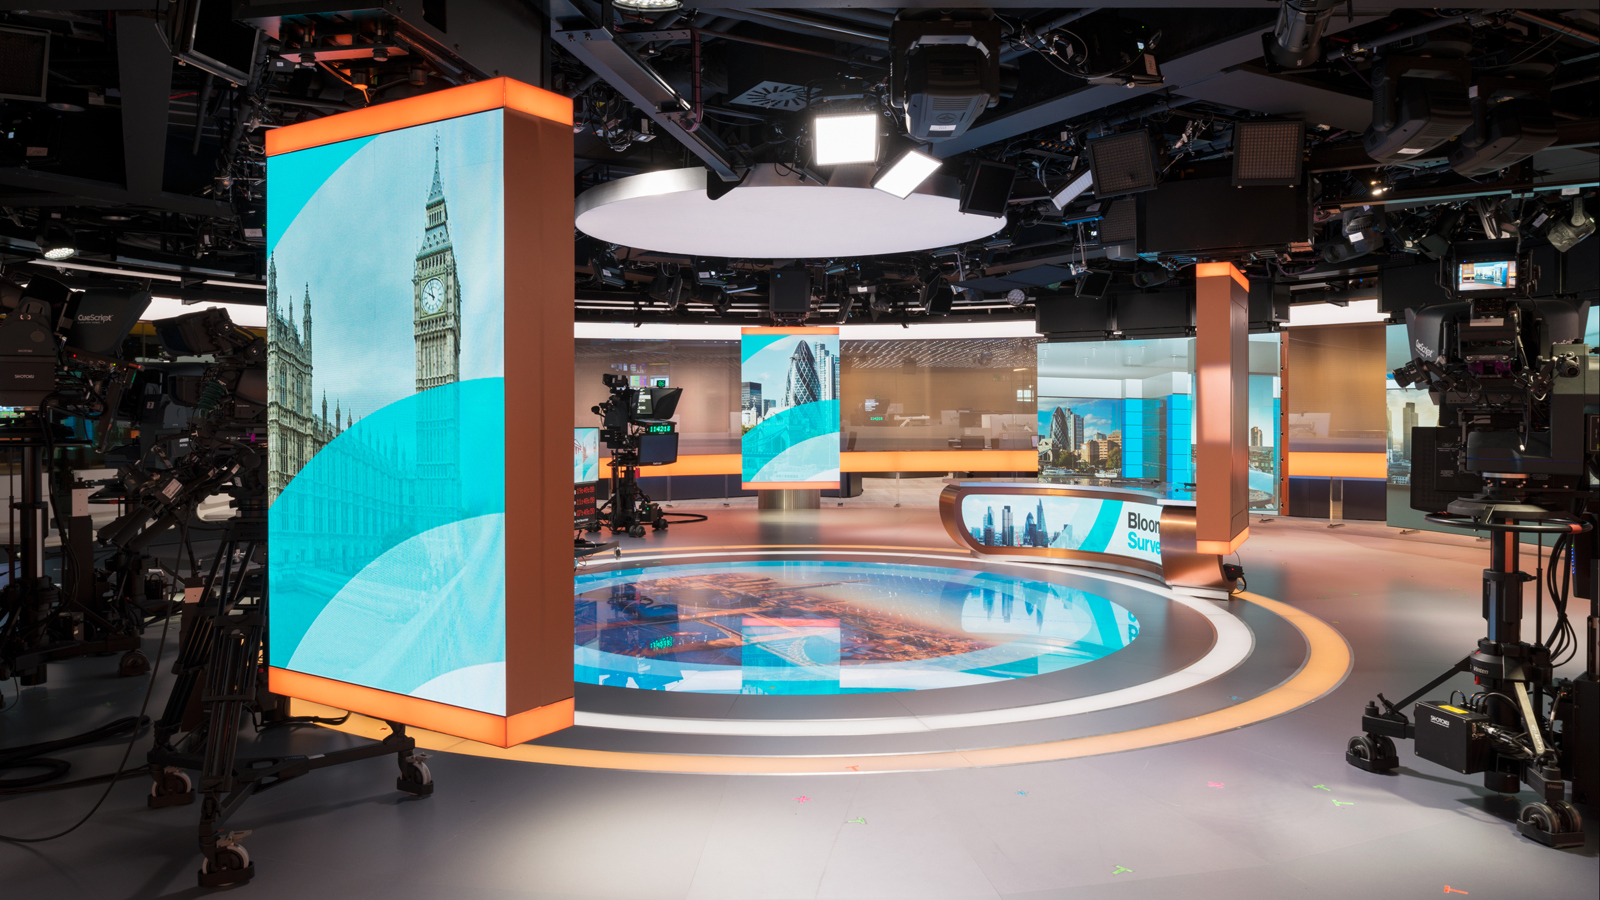 ncs_Bloomberg-London-TV-Studio-Newsroom-Jack-Morton_0003